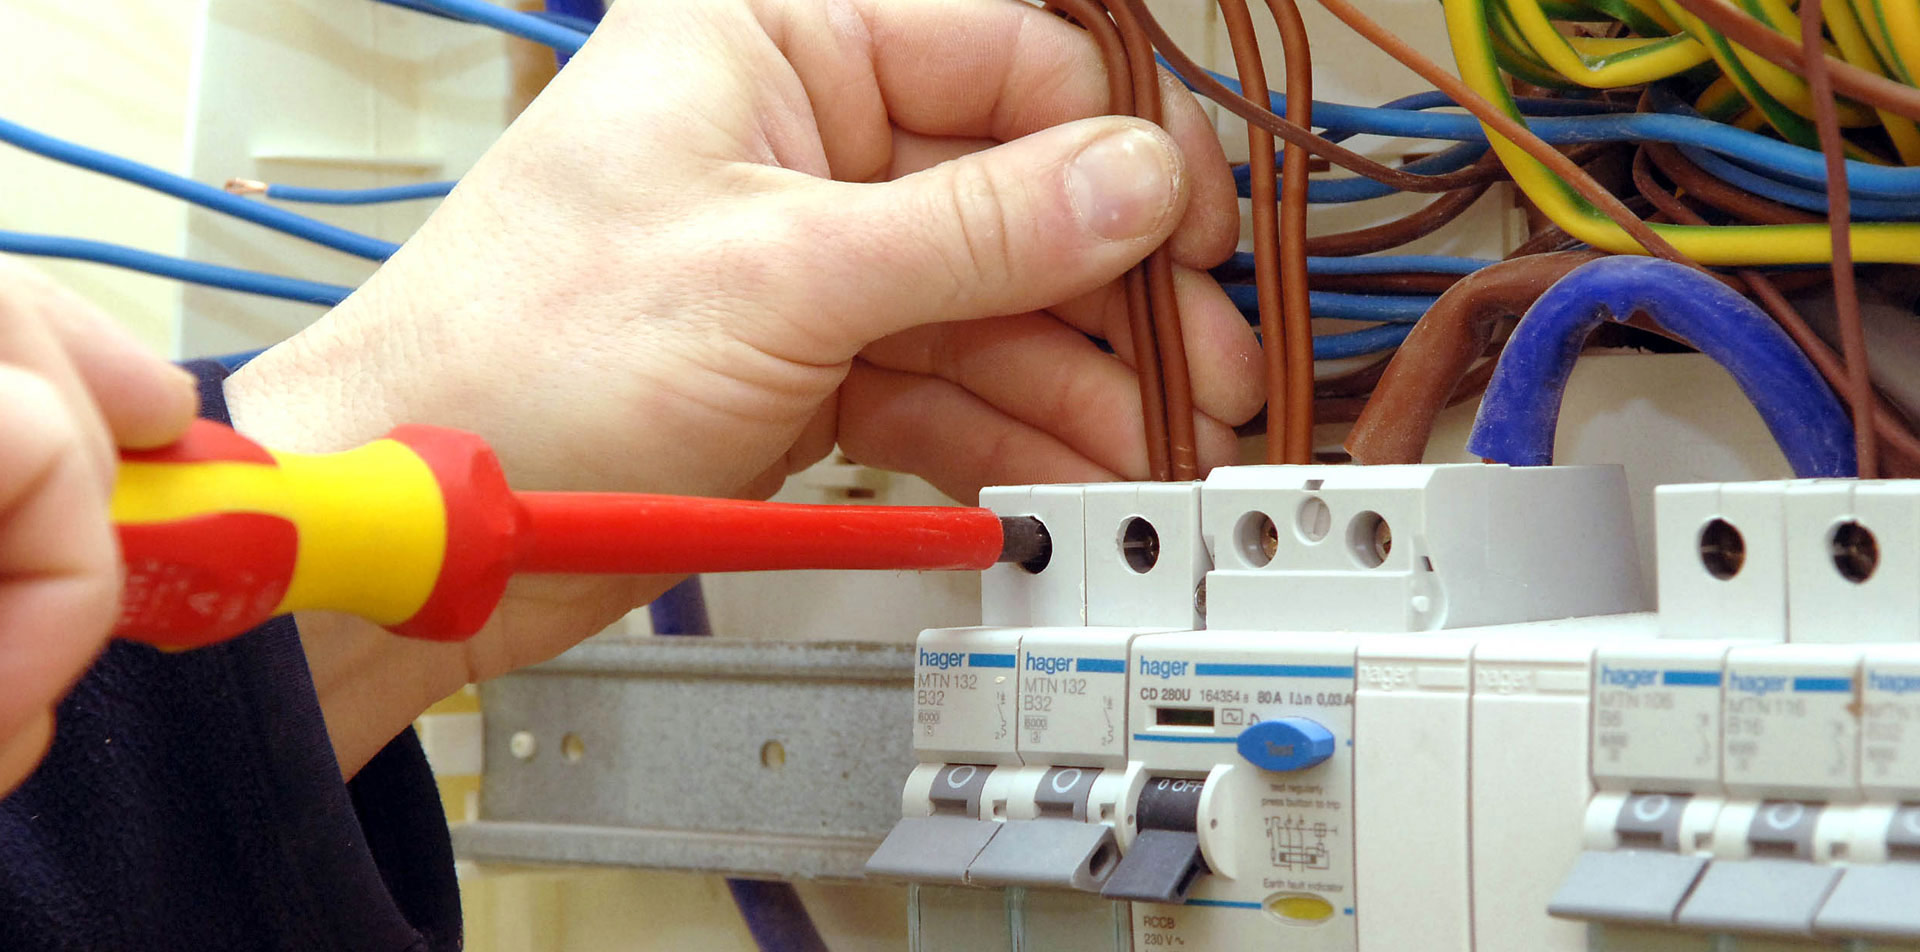 What quality to find the good electrician in Lilydale?